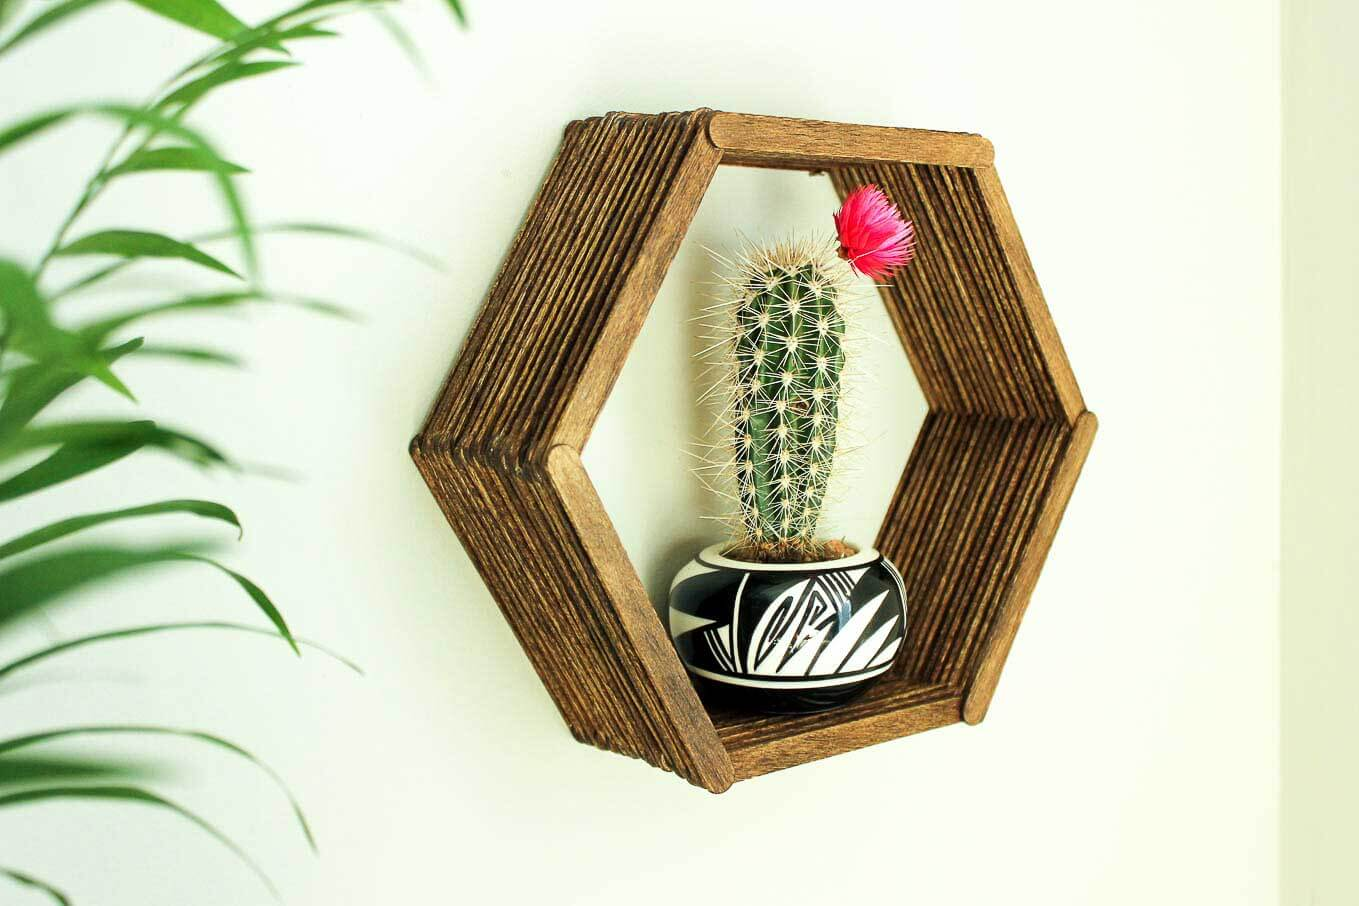 DIY Room Decor Ideas You'd Want To Steal (2020)